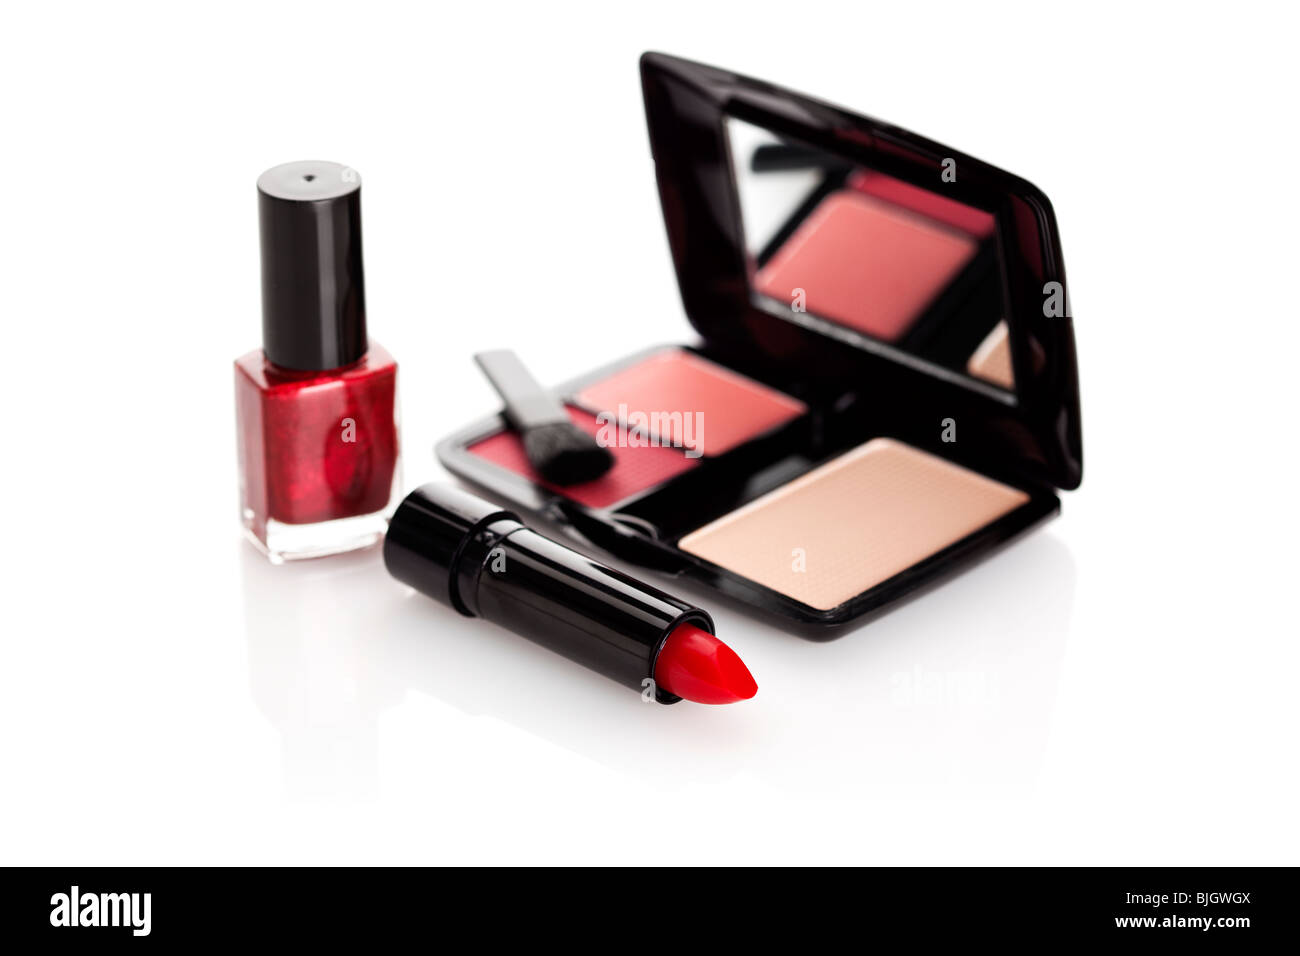 red lipstick, nail varnish and case with rouge and make up on white background - Stock Image